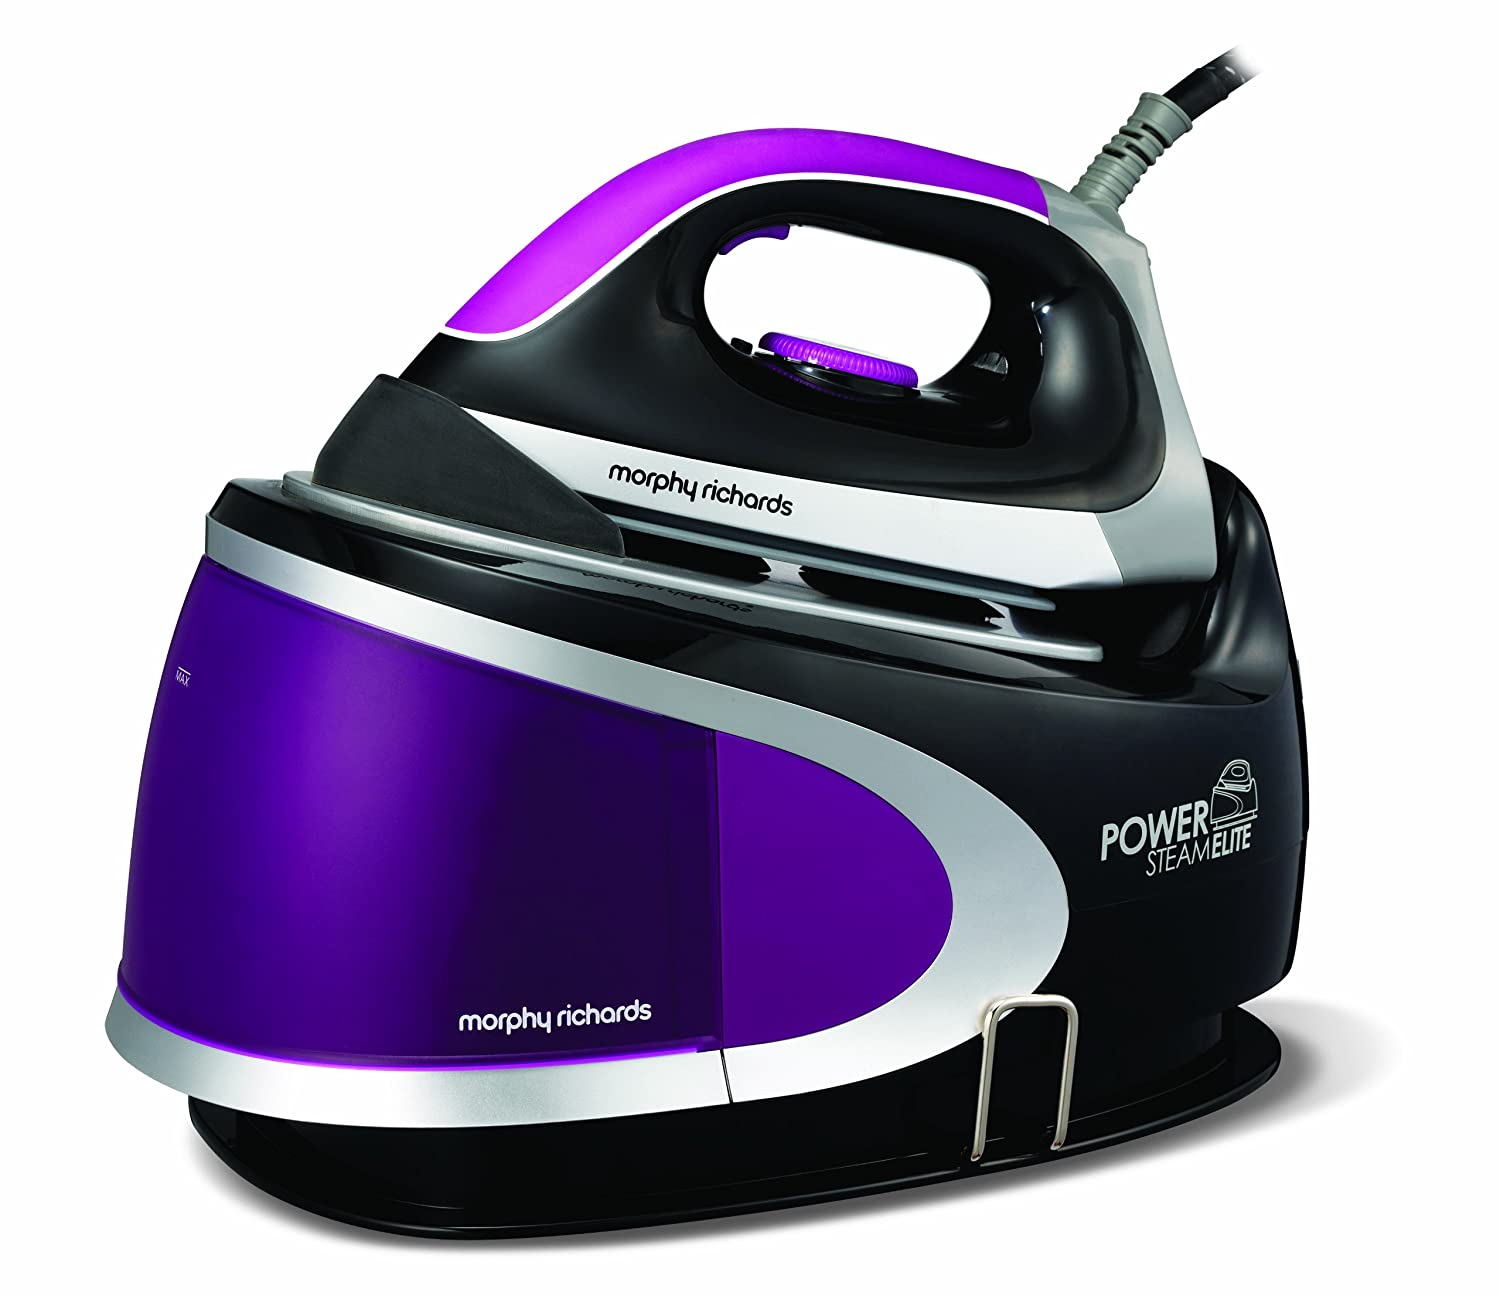 Morphy Richards Power Steam Elite Pressurised Steam